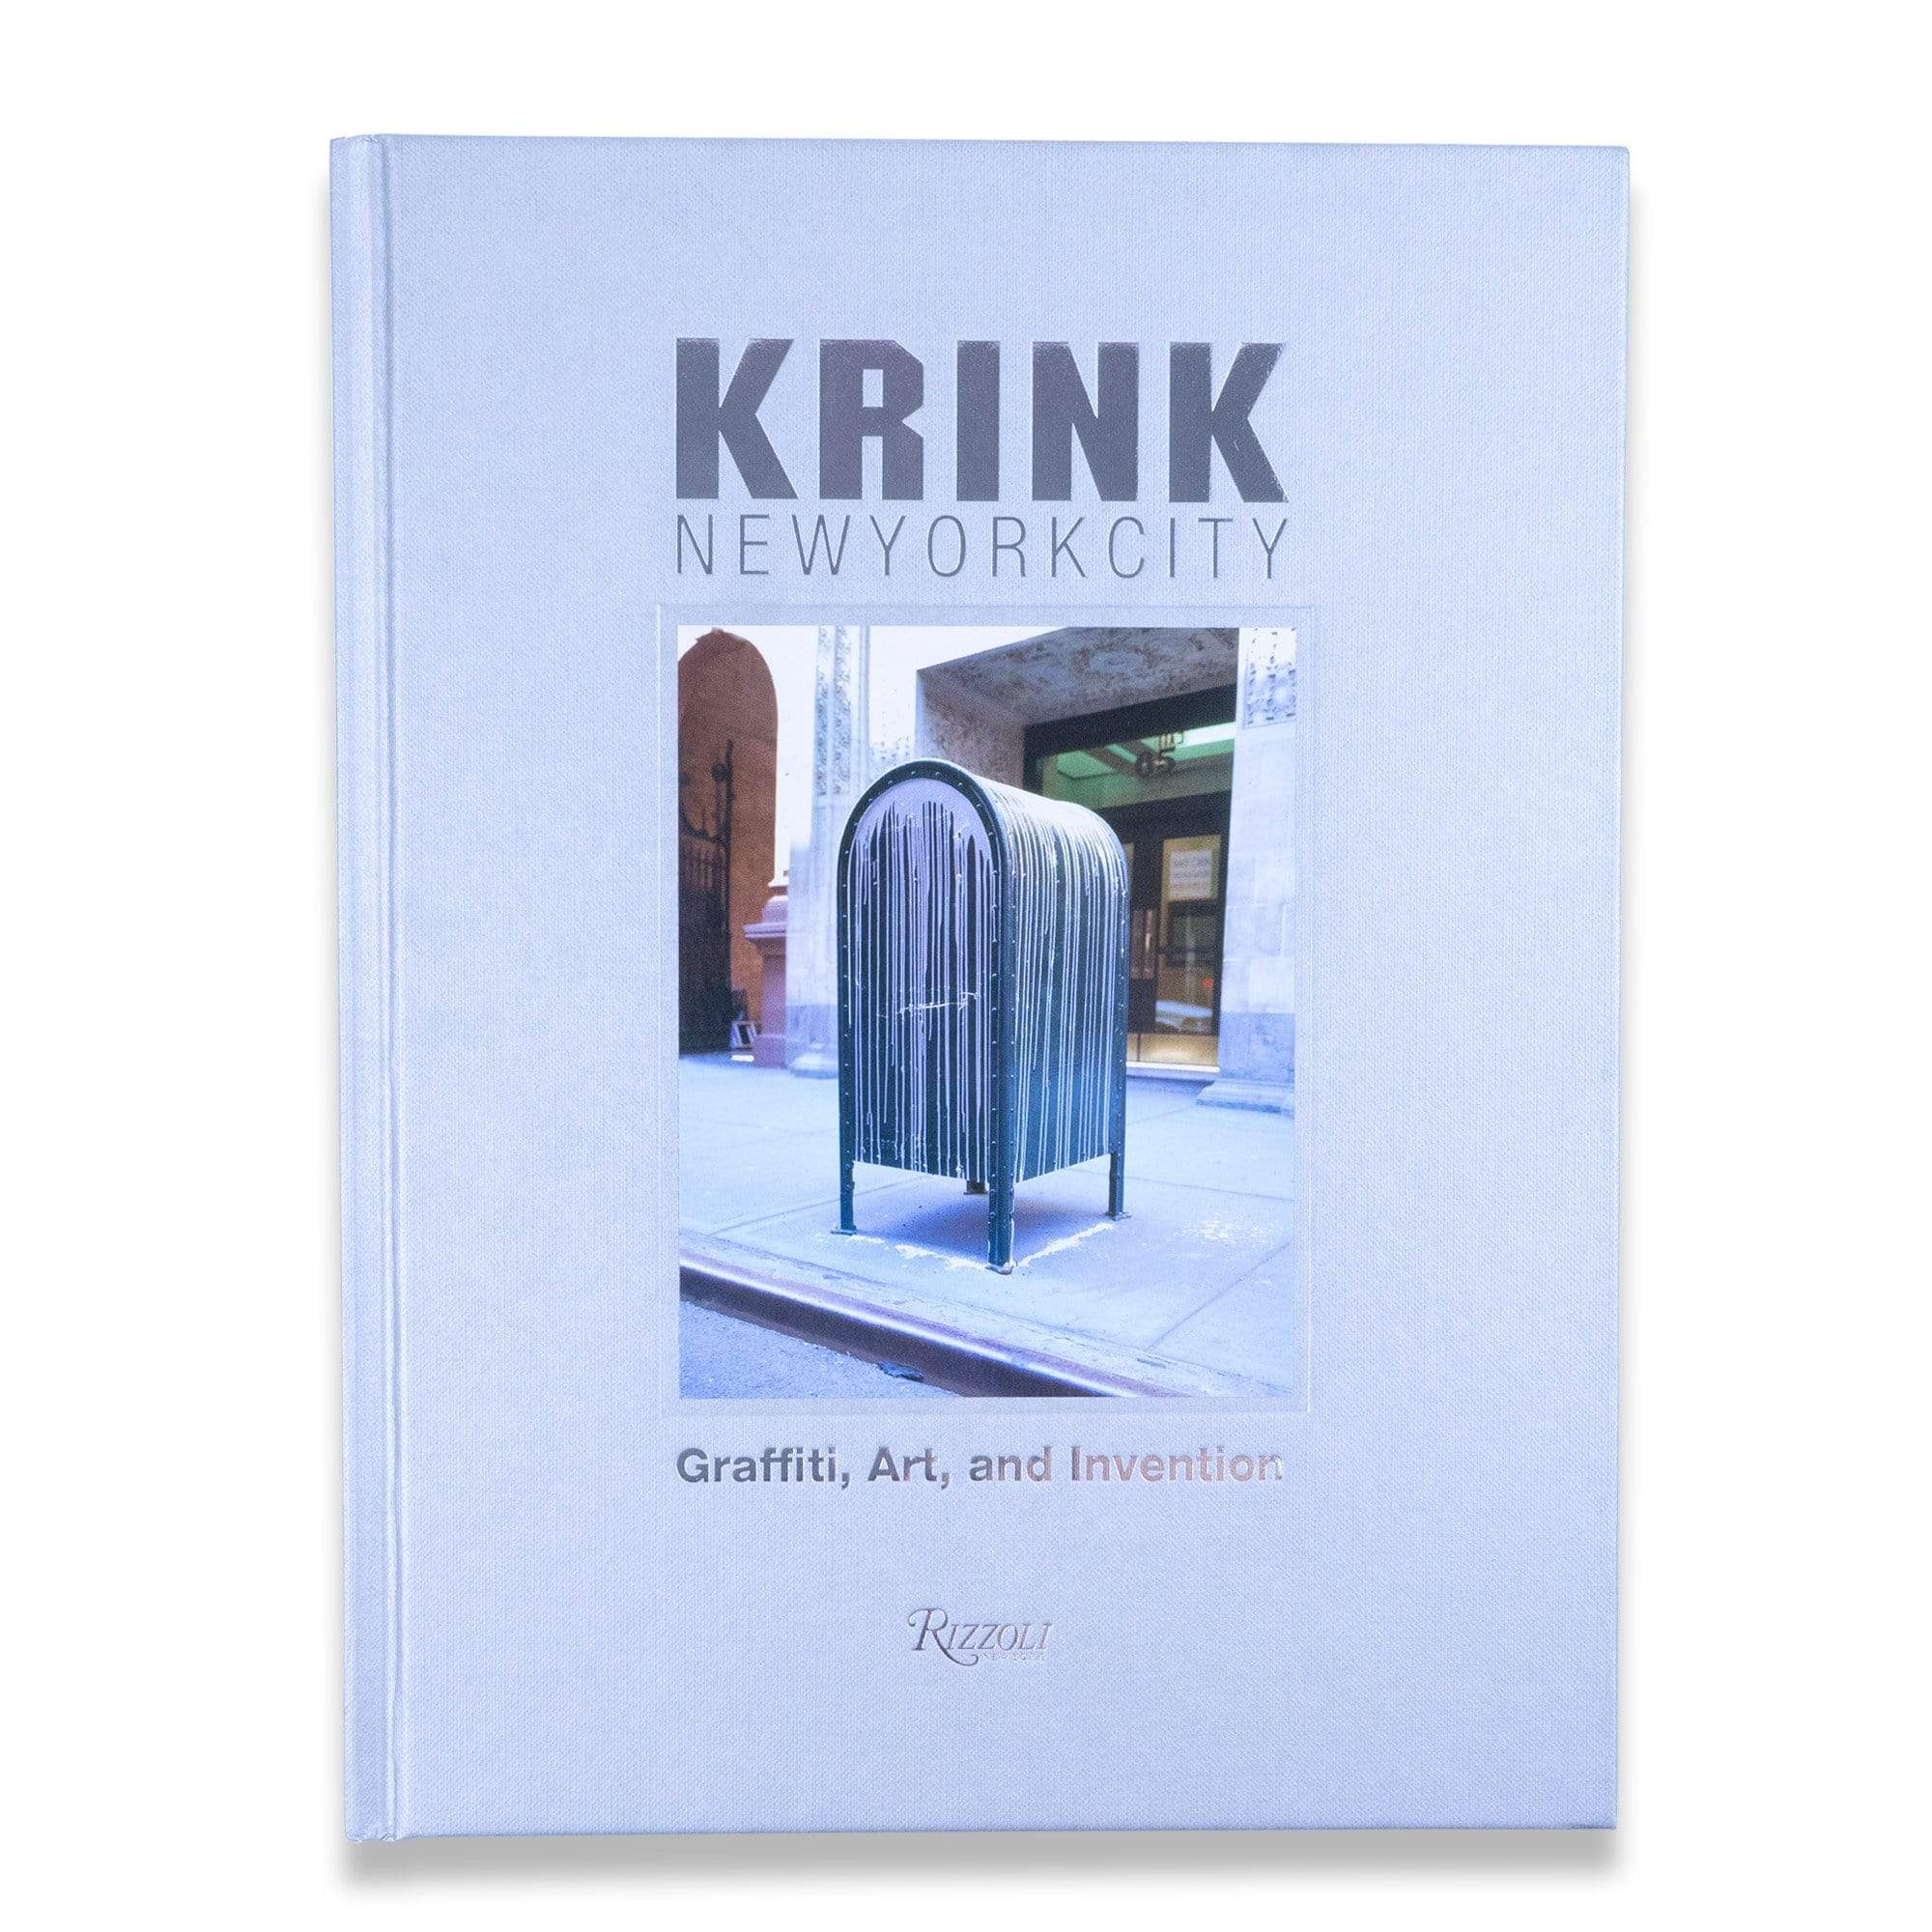 Rizzoli New York Bücher KRINK New York City: Graffiti, Art, and Invention (Englisch)